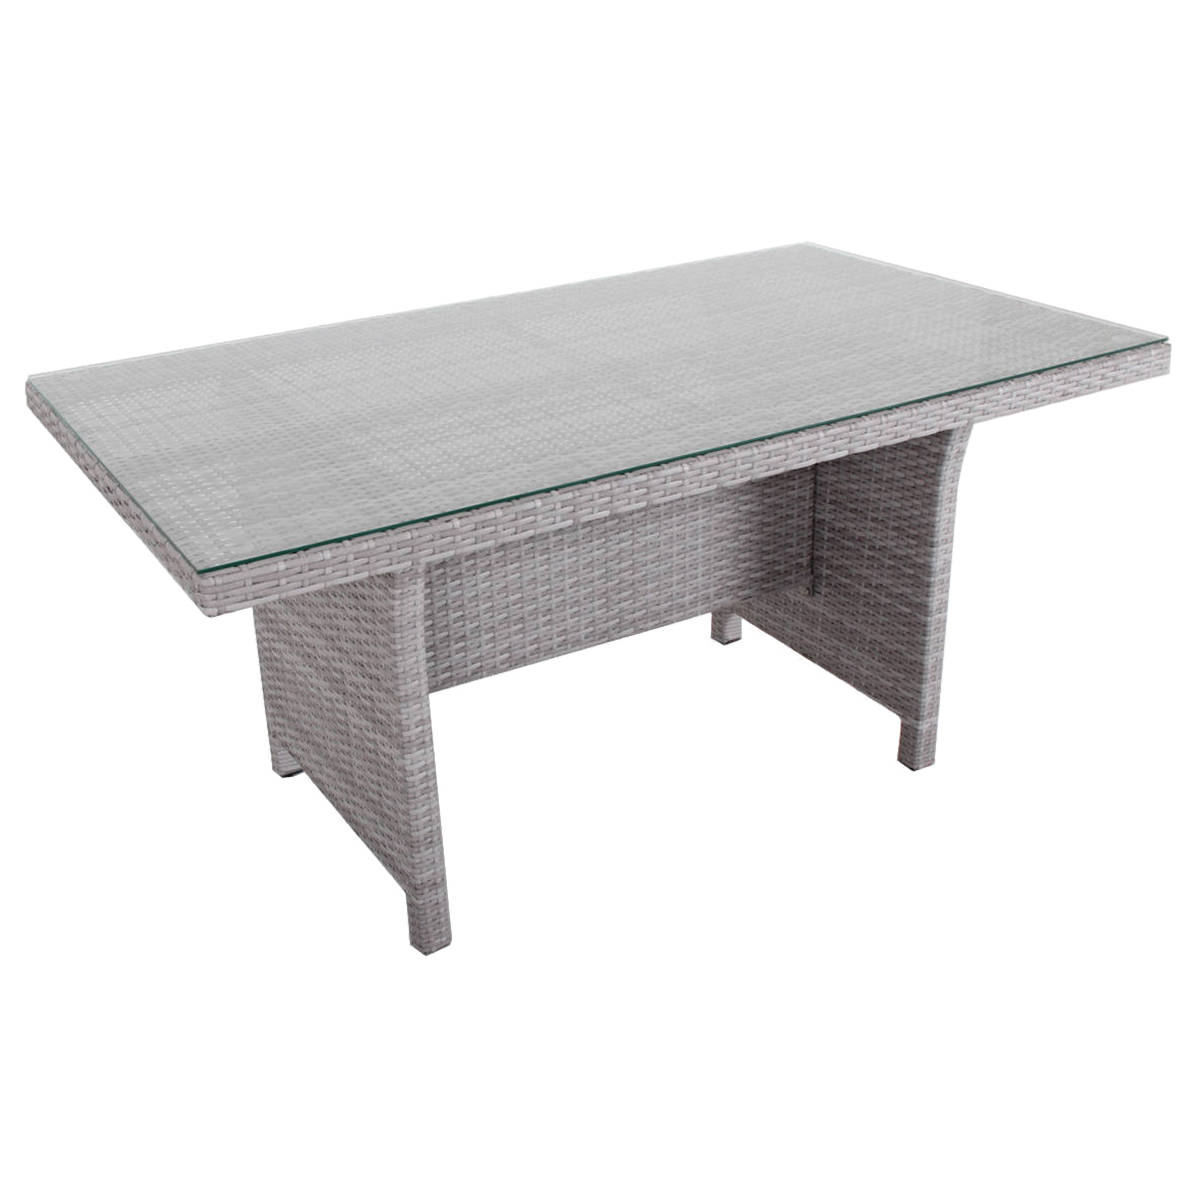 D coration table en verre incontournable salon nimes for Ikea table basse en verre